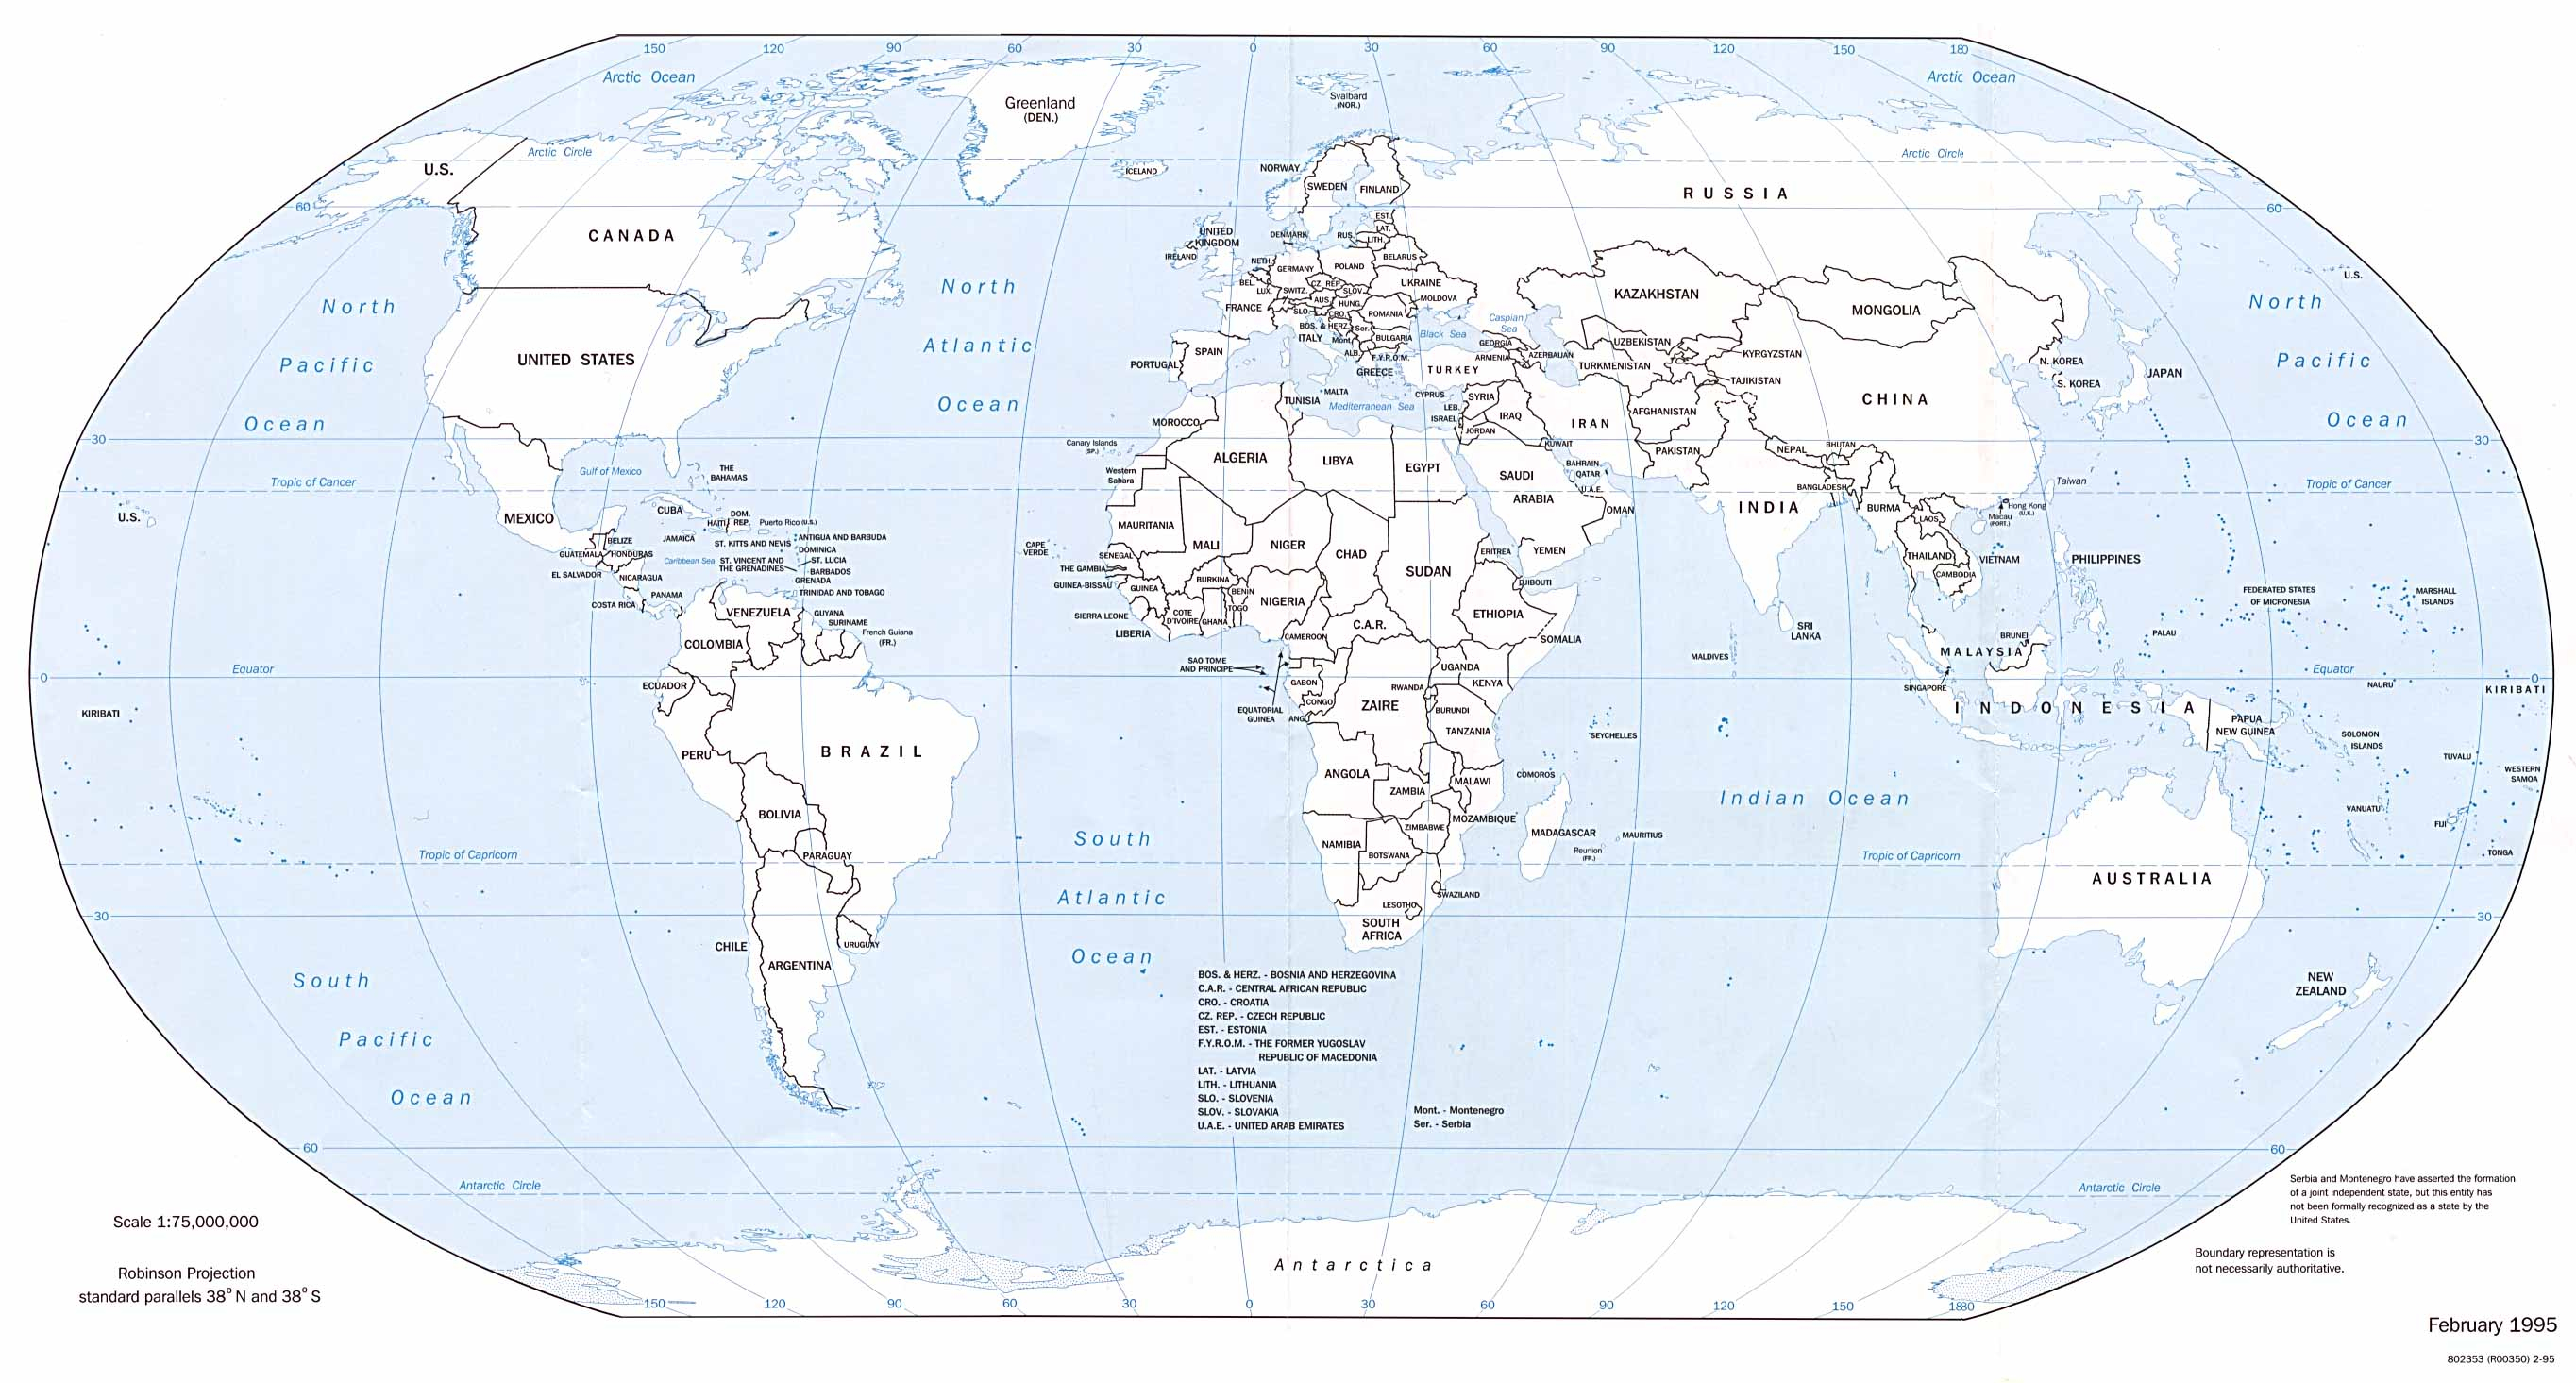 Free Printable World Map With Countries Labeled #616147 - Printable World Map With Countries Labeled